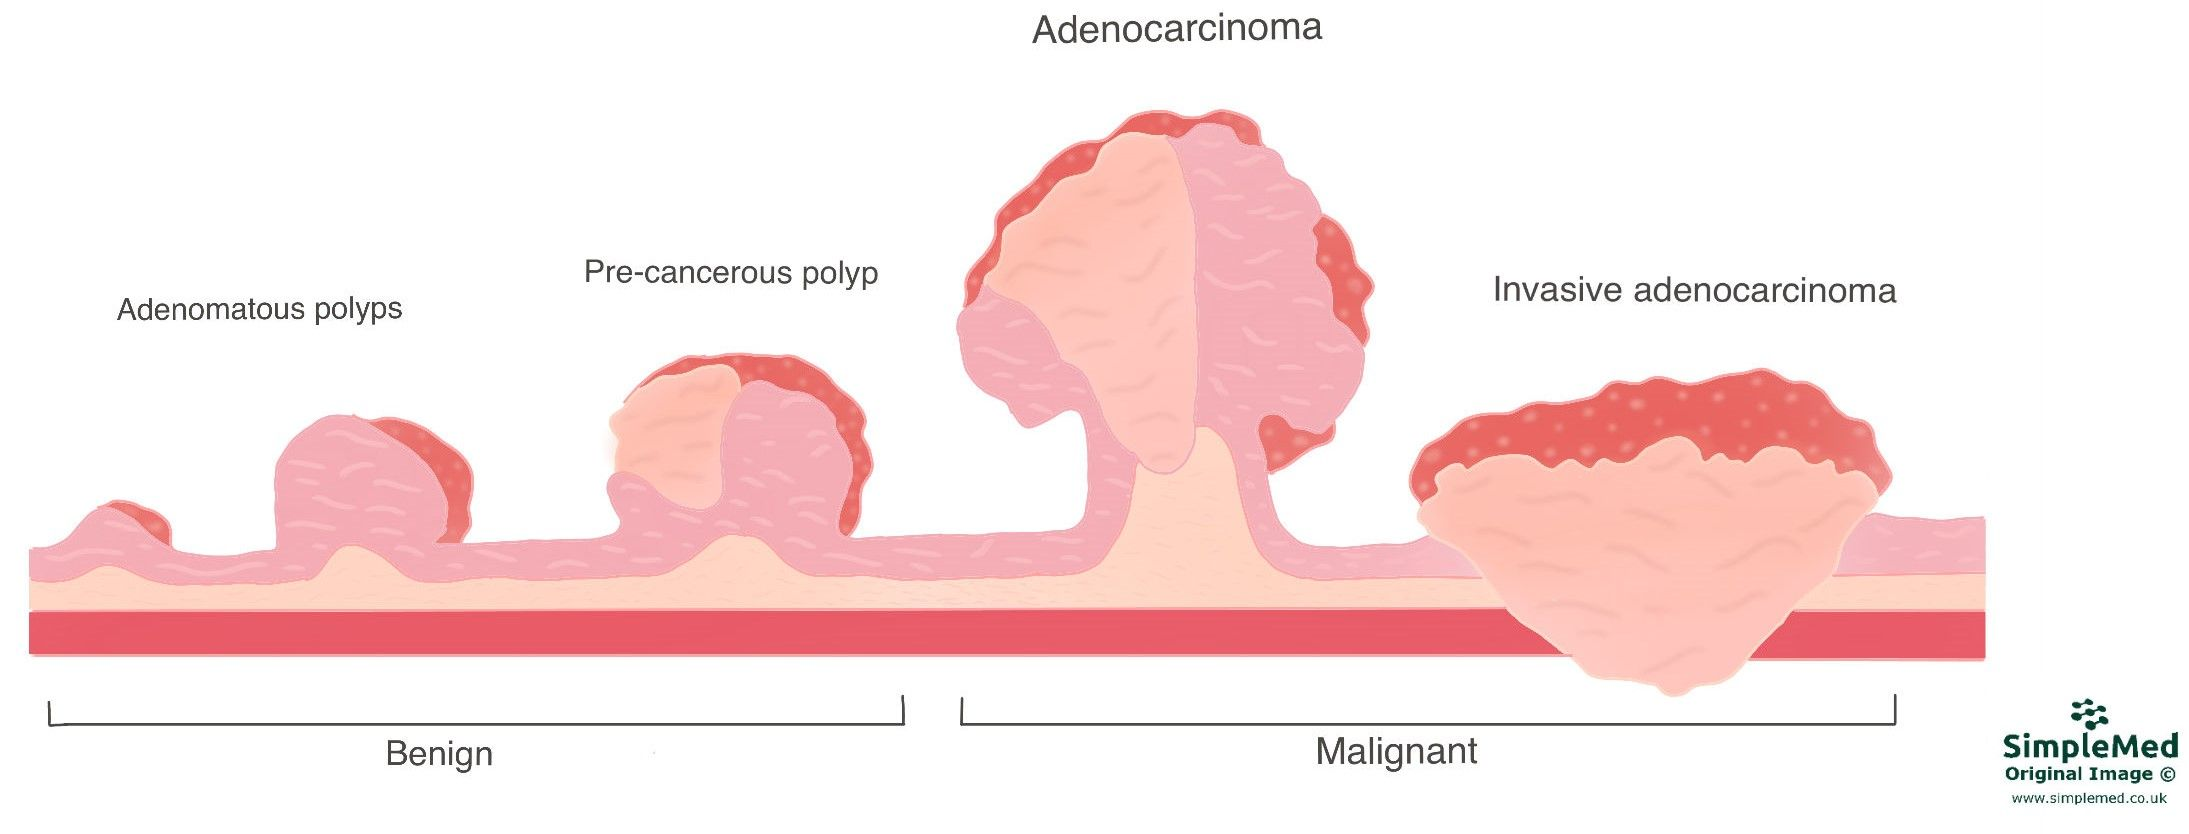 Carcinoma to Adenocarcinoma Progression SimpleMed